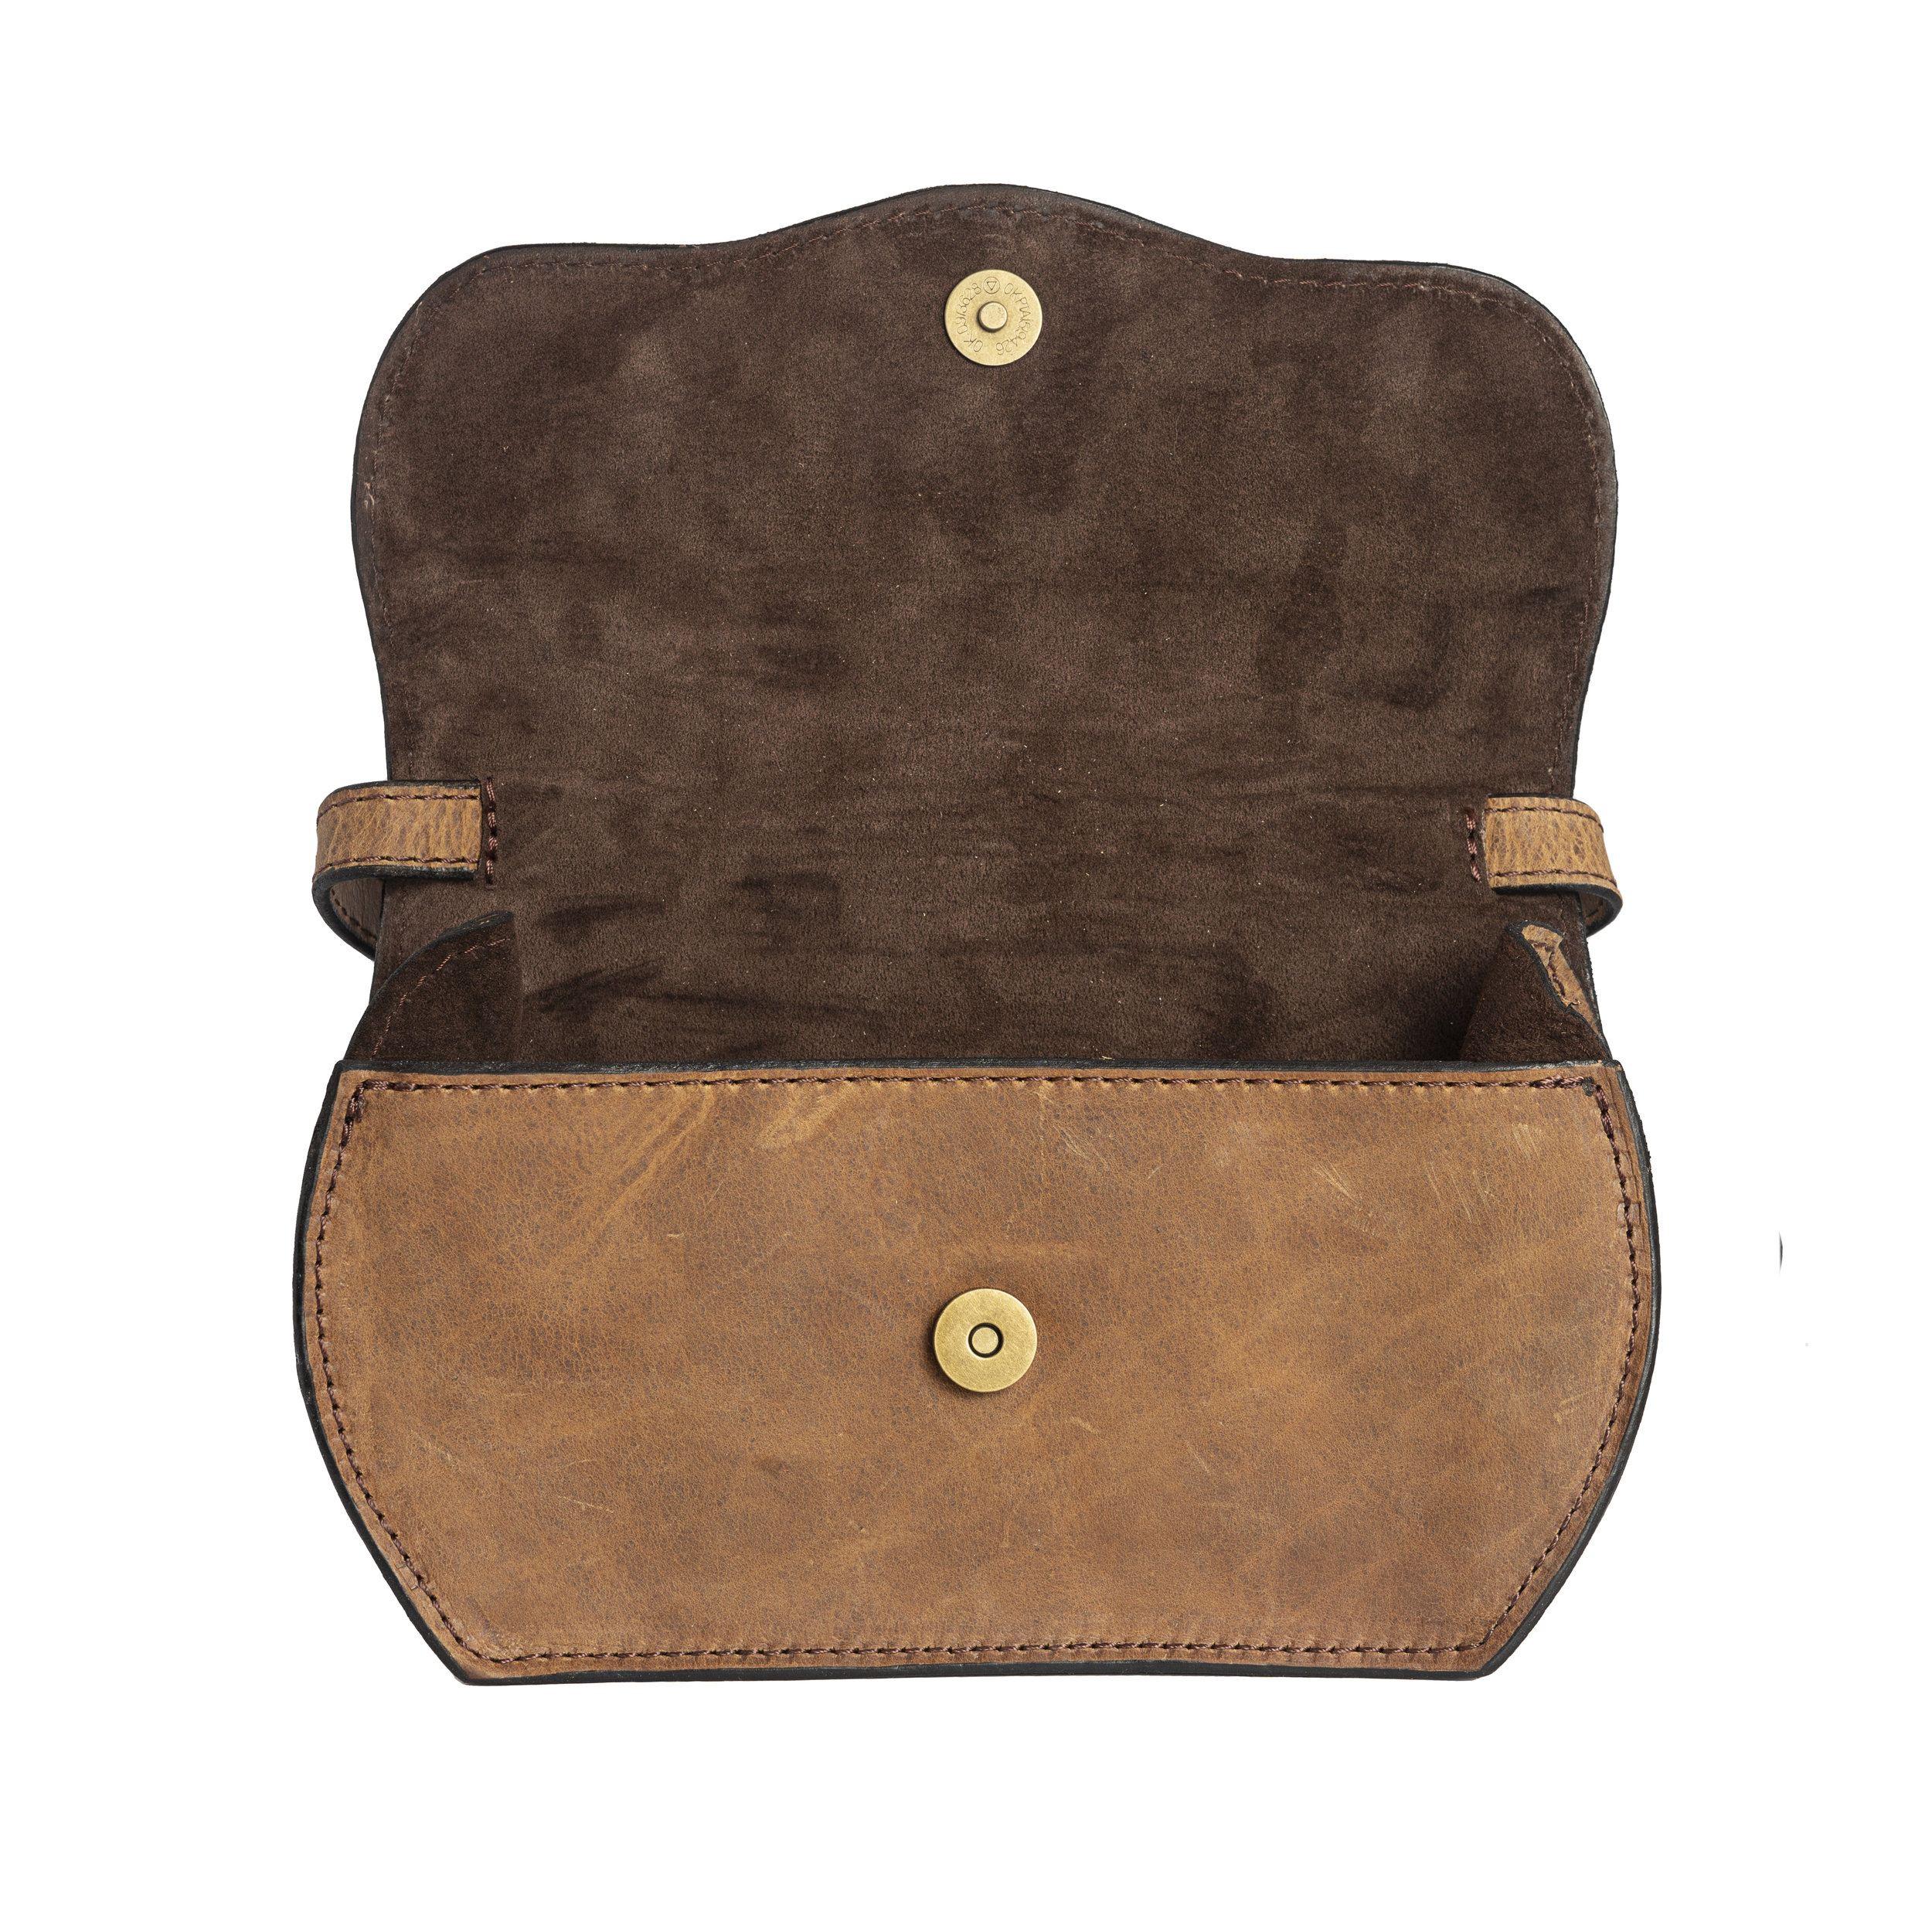 the heritage hip pack interior -